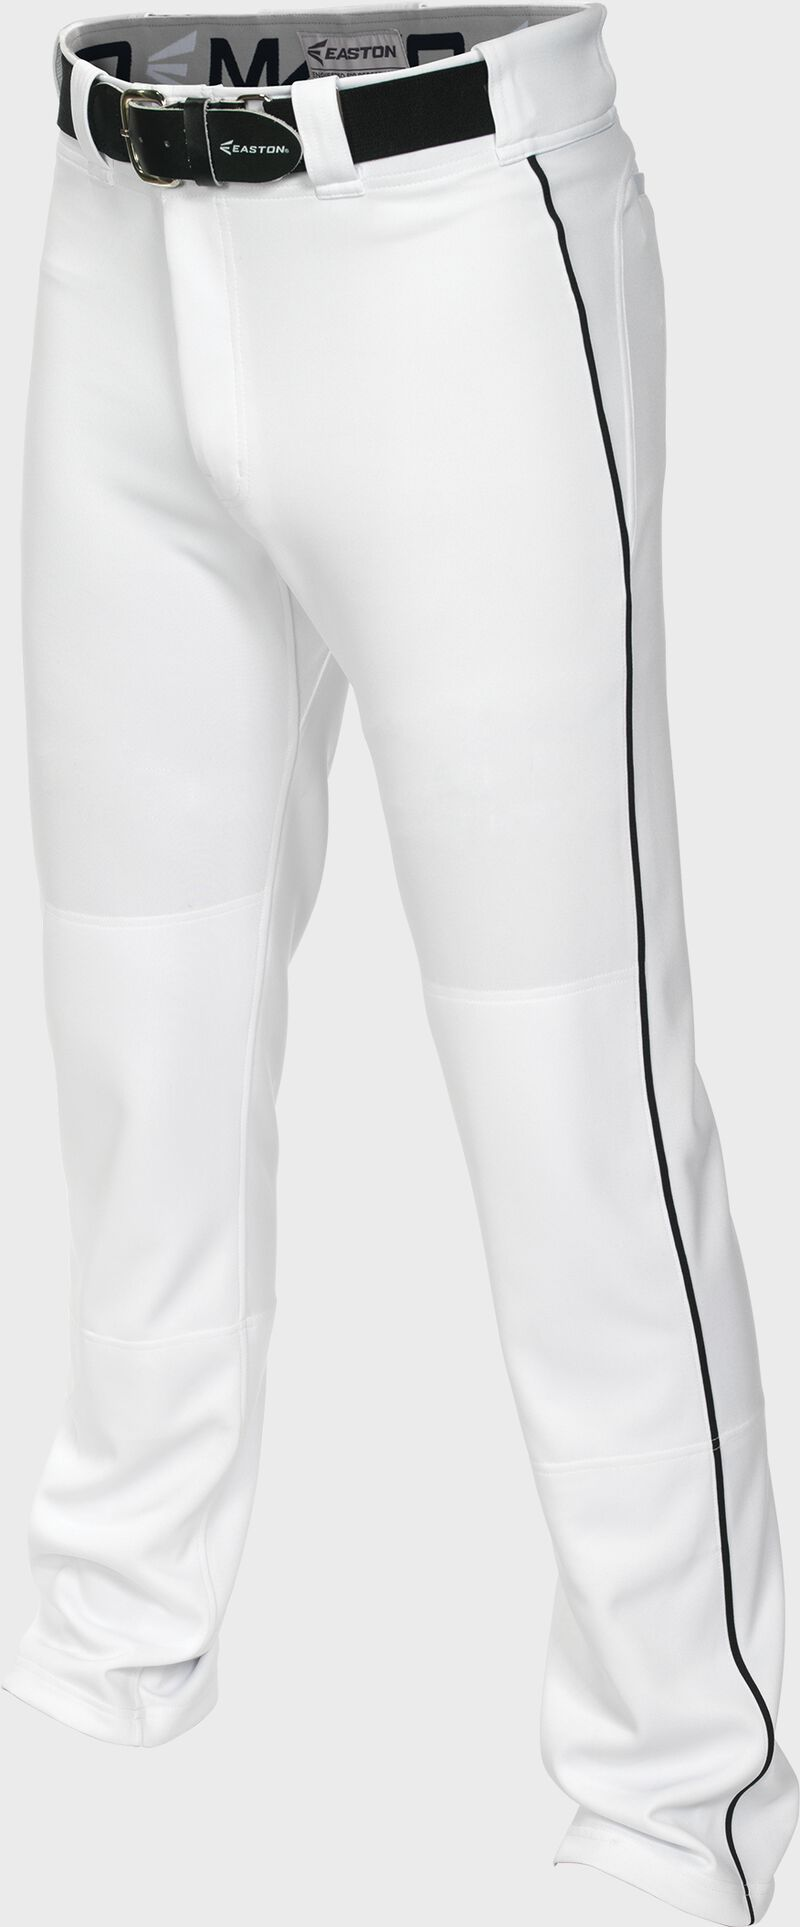 Mako 2 Pant Youth Piped WHITE/BLACK  M